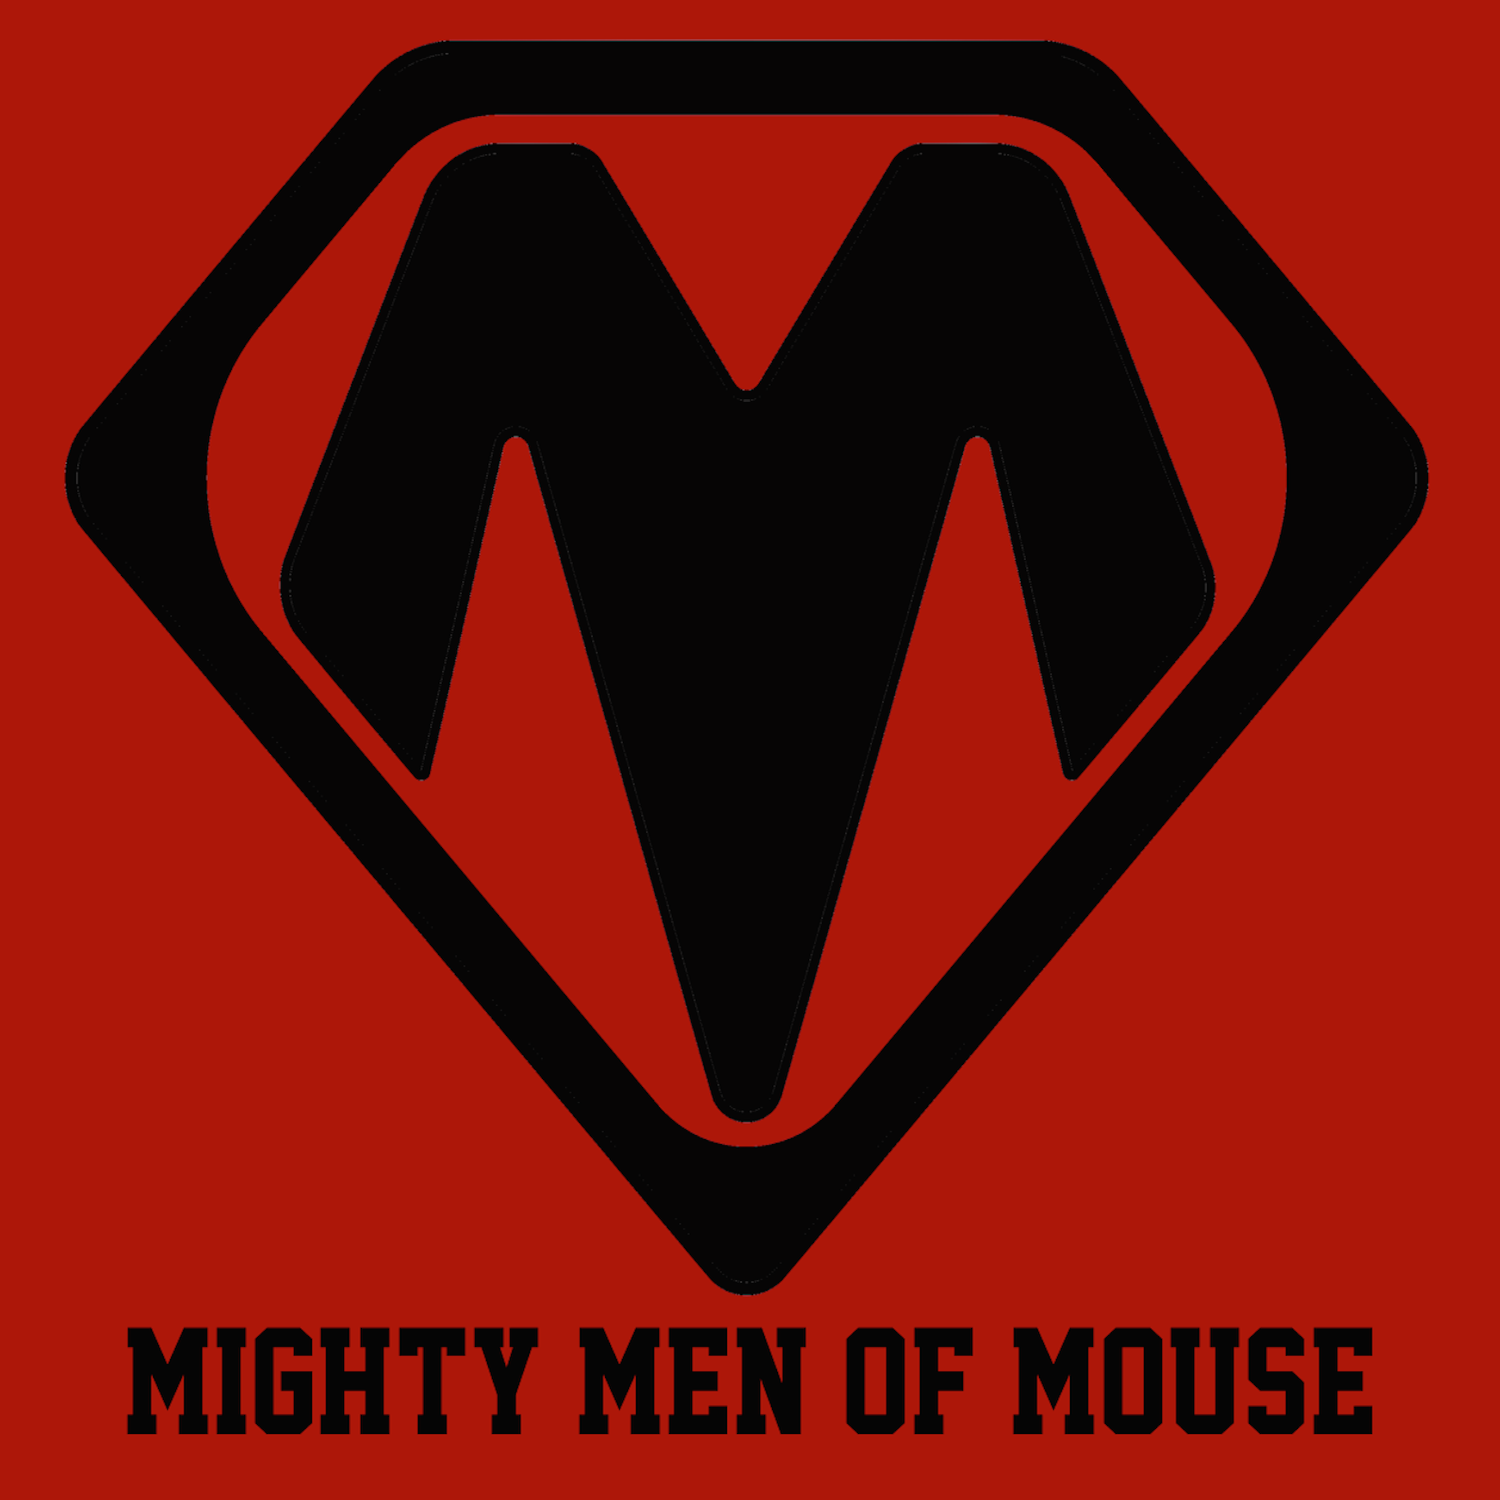 Mighty Men of Mouse: Your Unofficial Walt Disney World Podcast logo